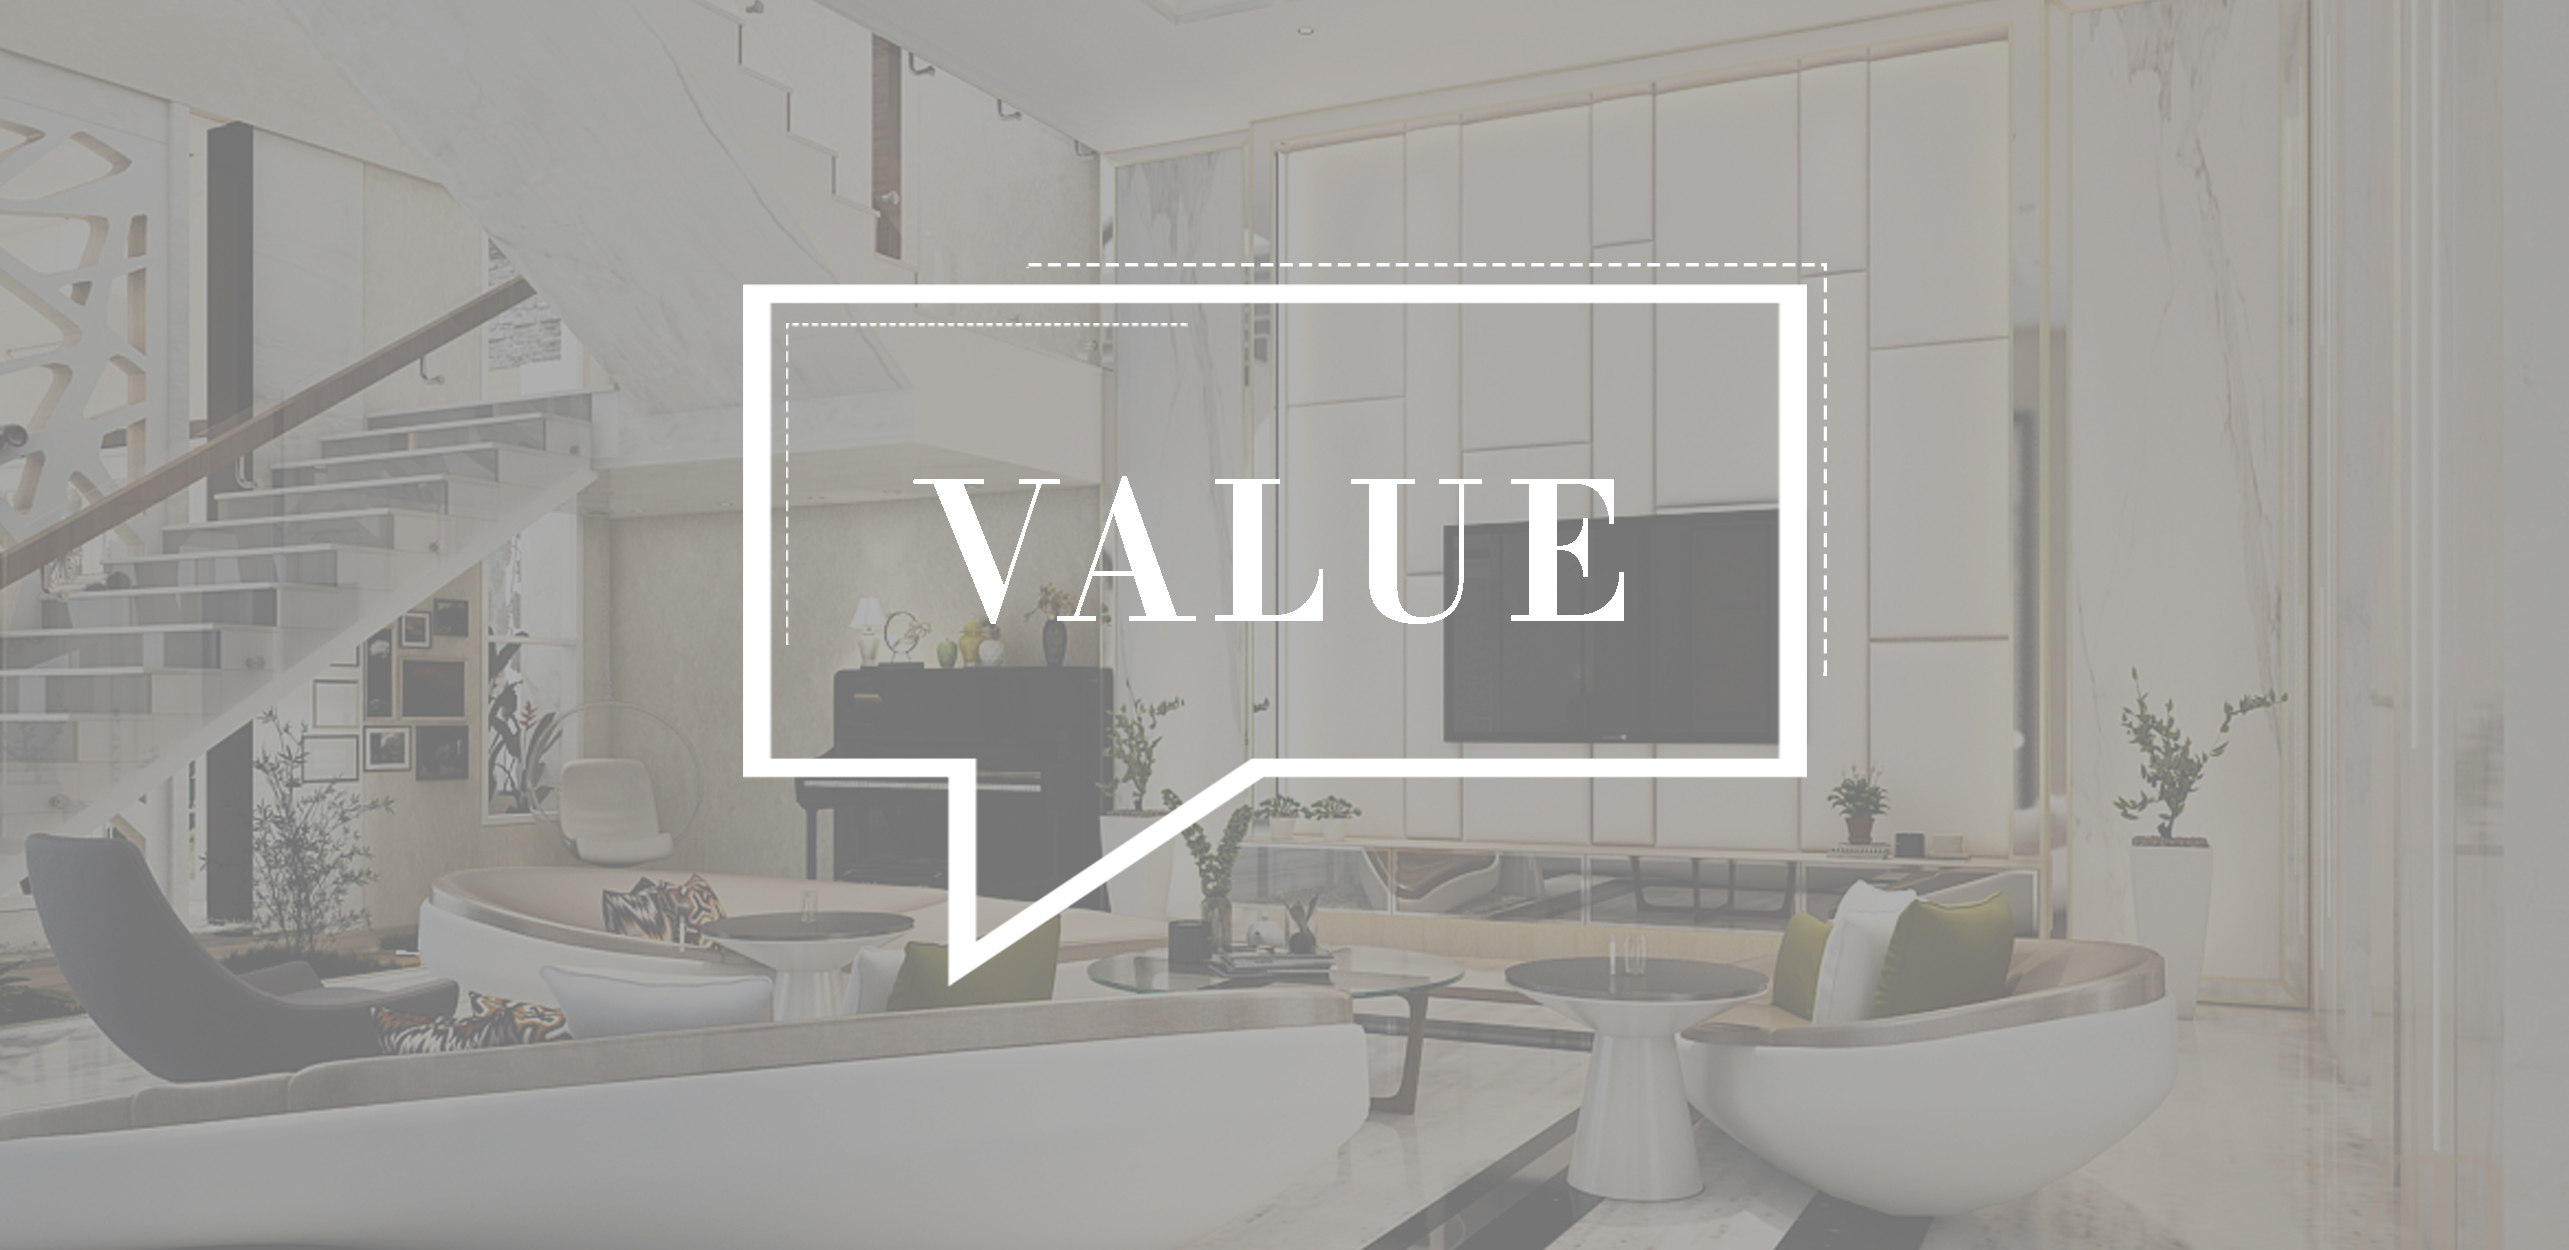 Our Value